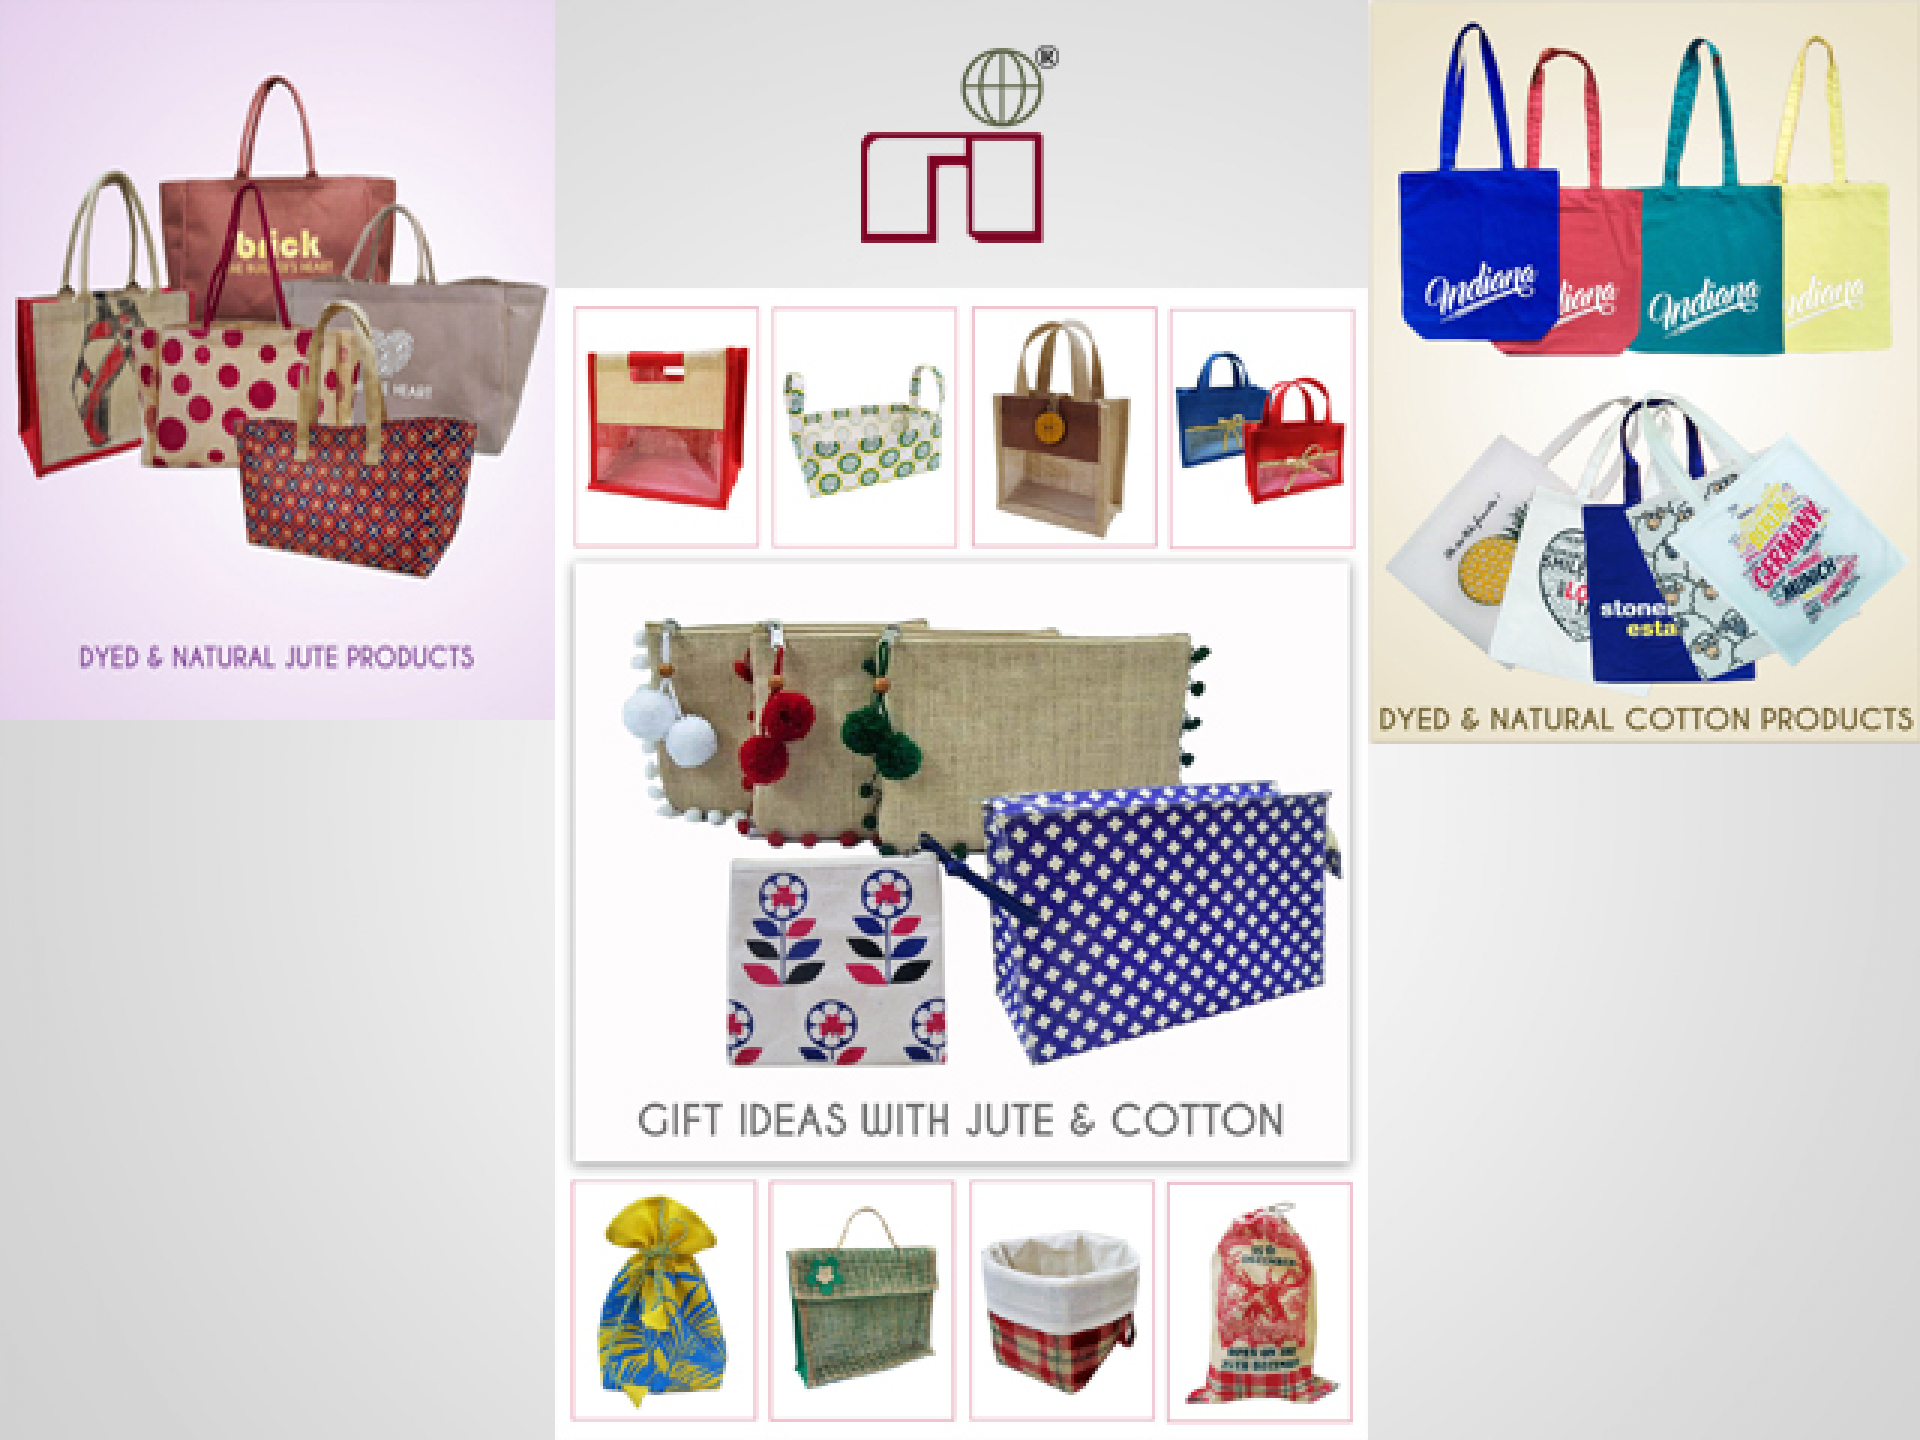 Asian Gifts & Travel Goods Show